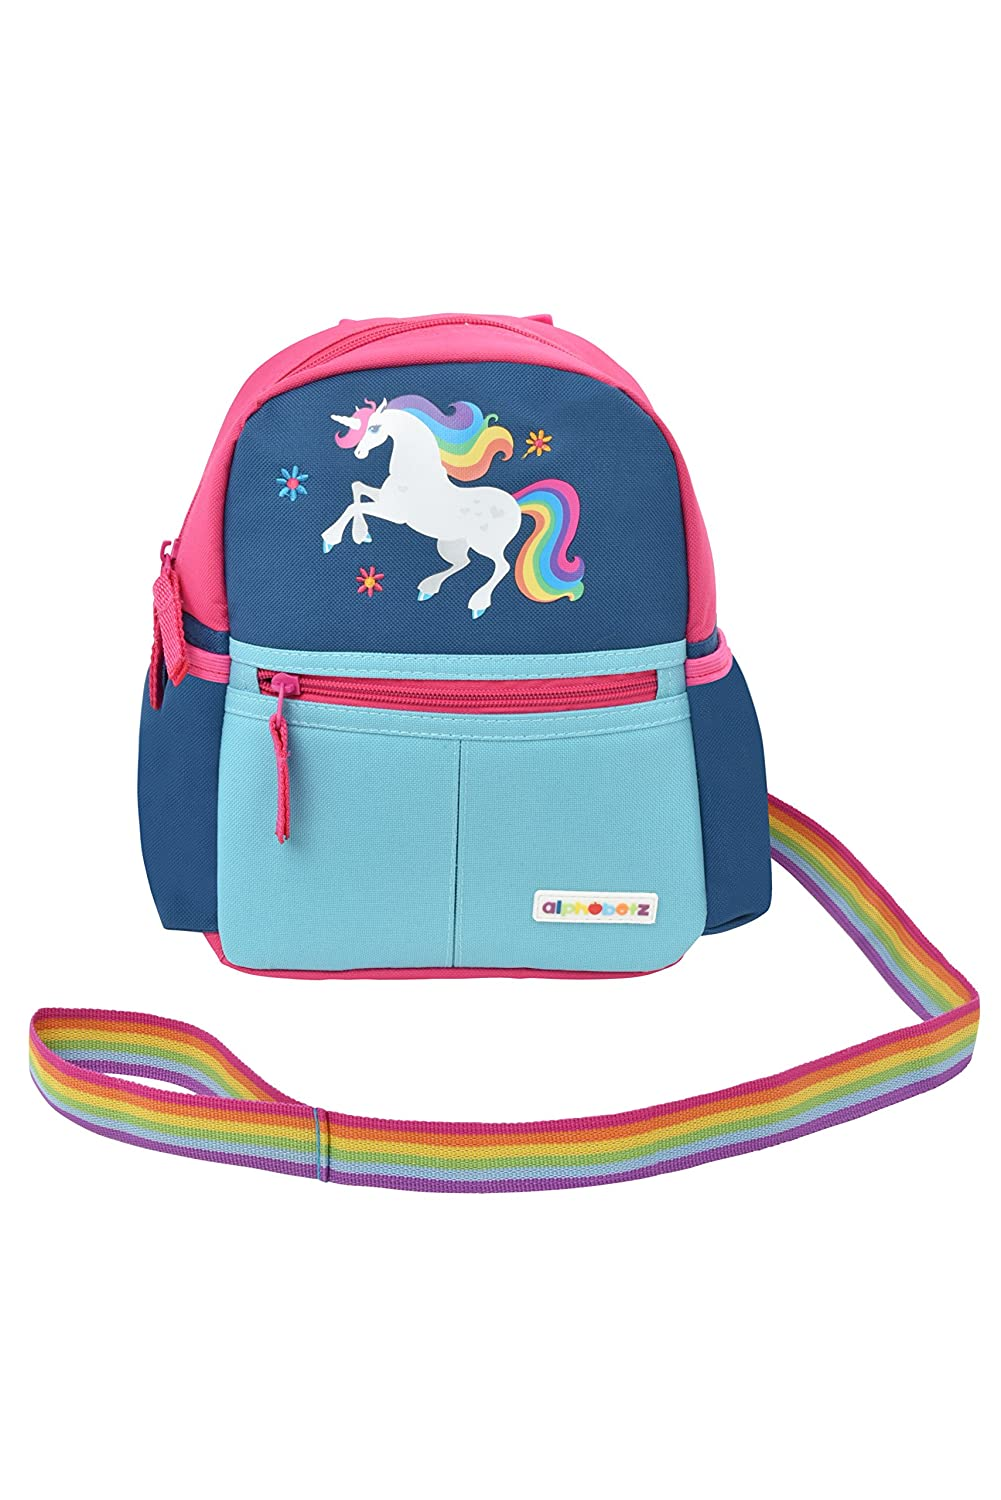 Alphabetz Unicorn Toddler Backpack with Leash, Pink, Blue, Universal Size for Girl 10240